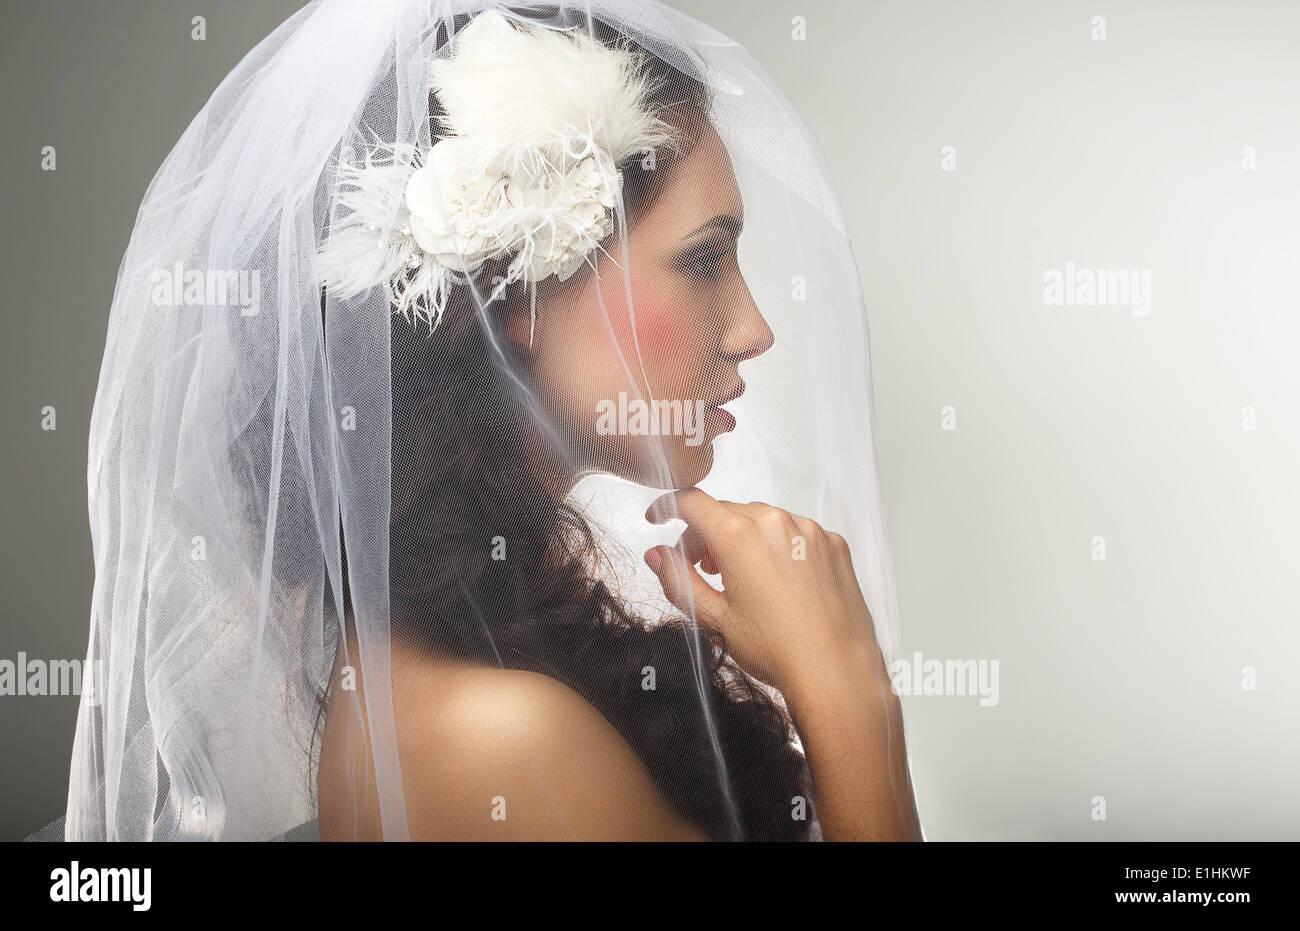 Engagement. Loveliness. Side view of Sincere Affectionate Woman in Veil - Stock Image